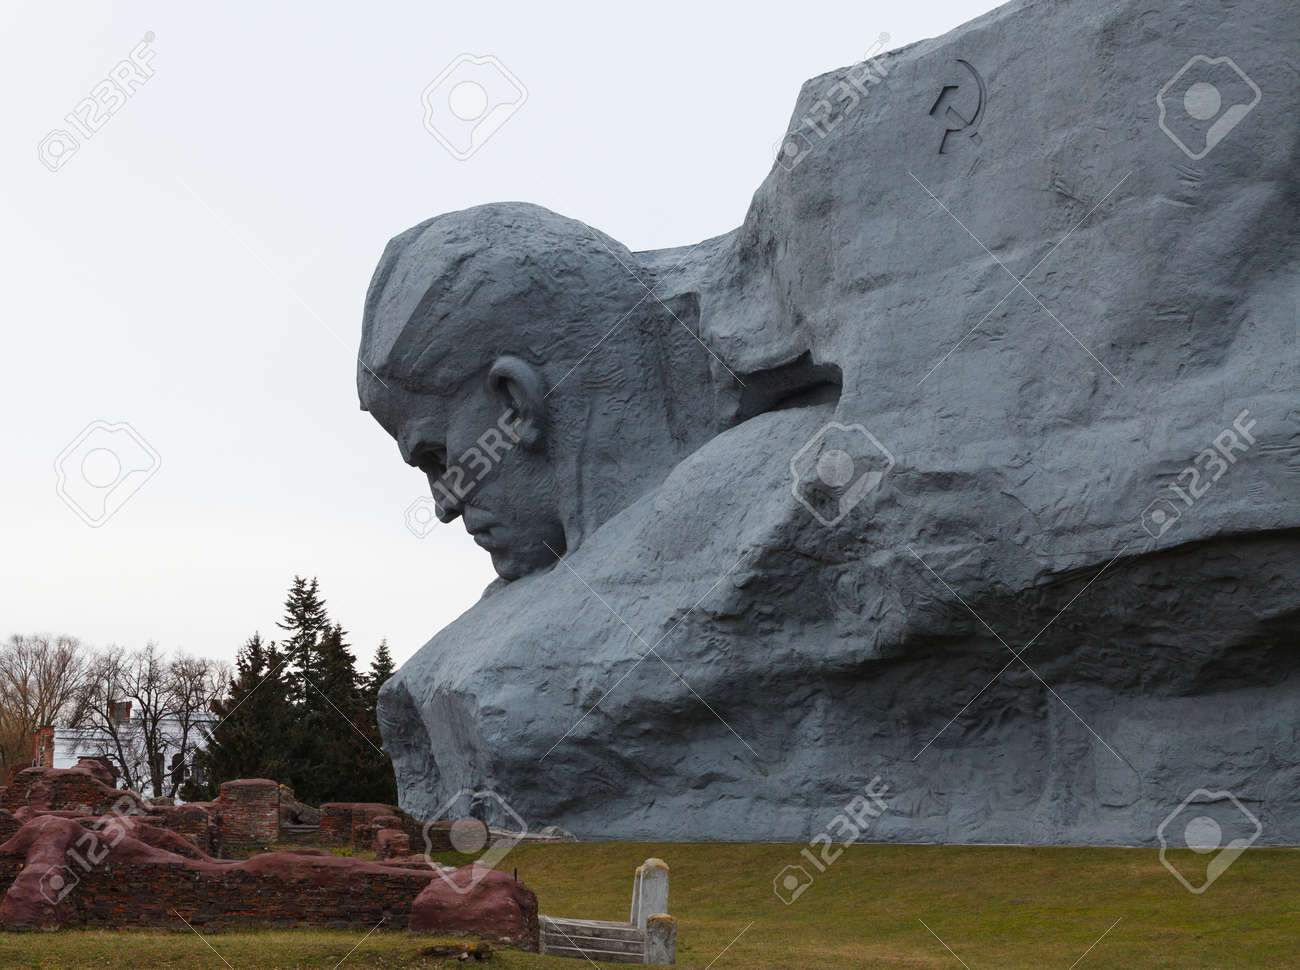 The monument to Soviet soldiers in Brest fortress Belarus Stock Photo - 17436637